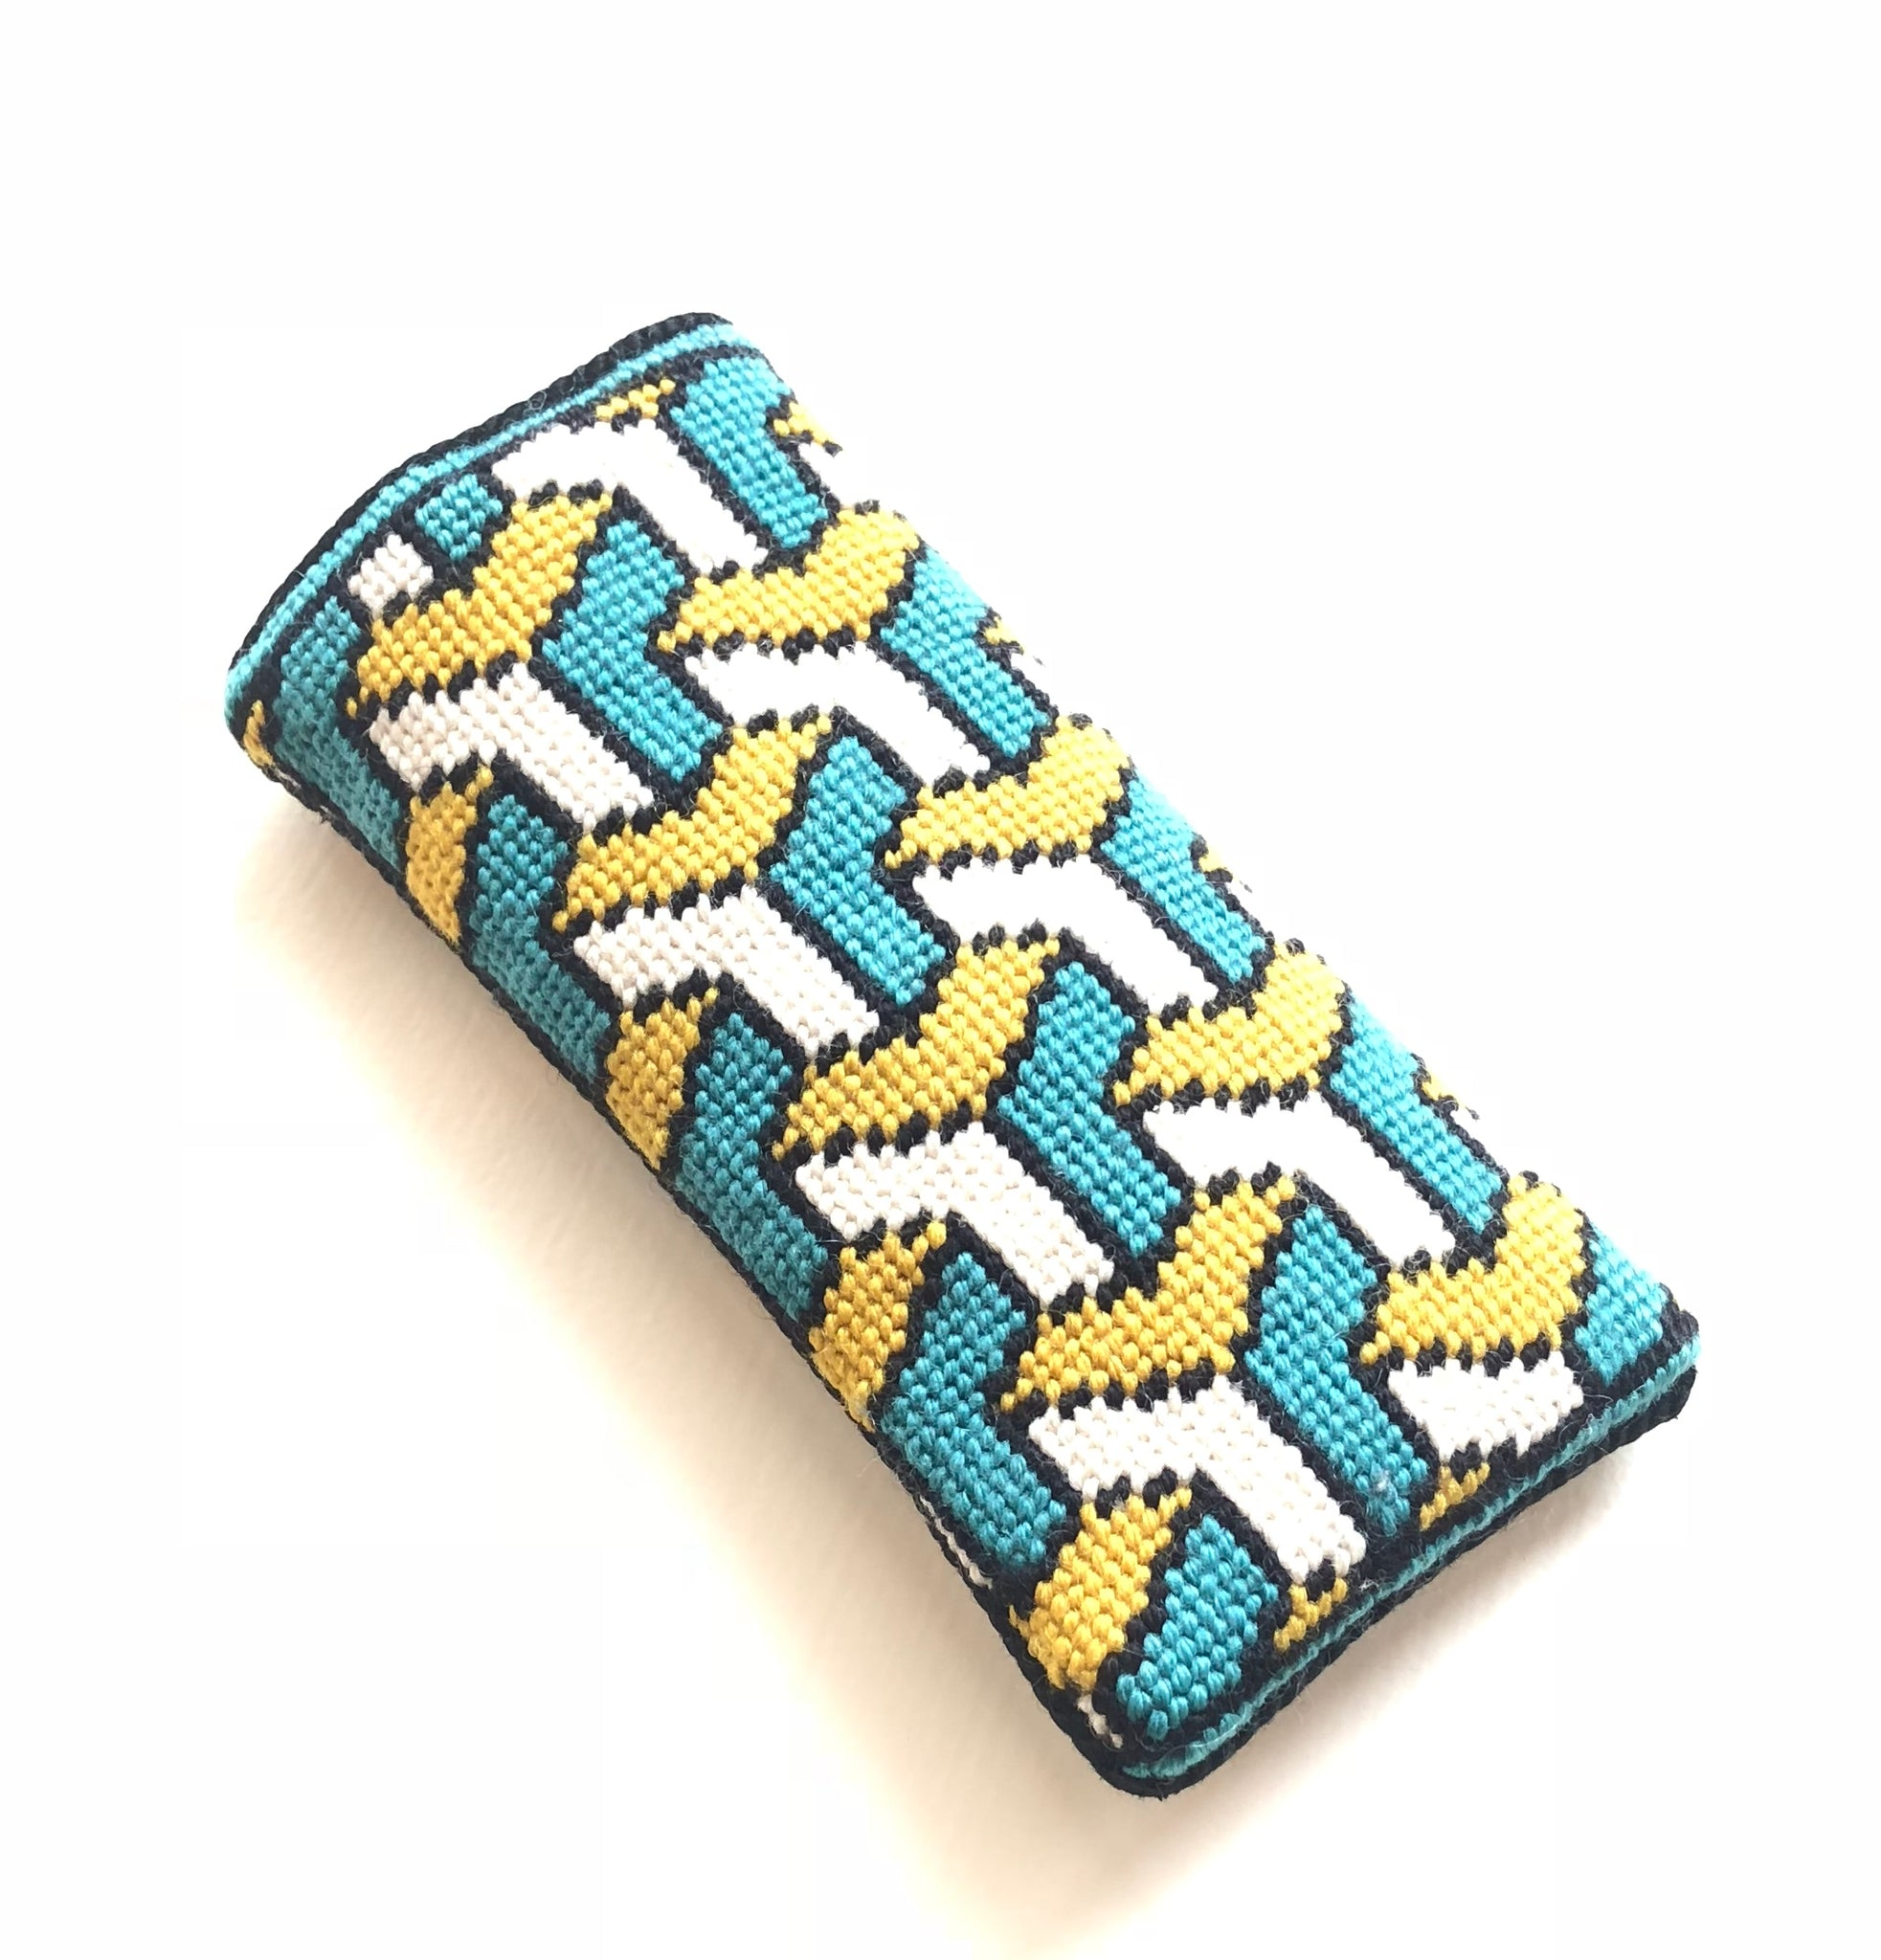 Eyeglass Case - Needlepoint Kit with Stitch Painted Canvas: Cascade Design